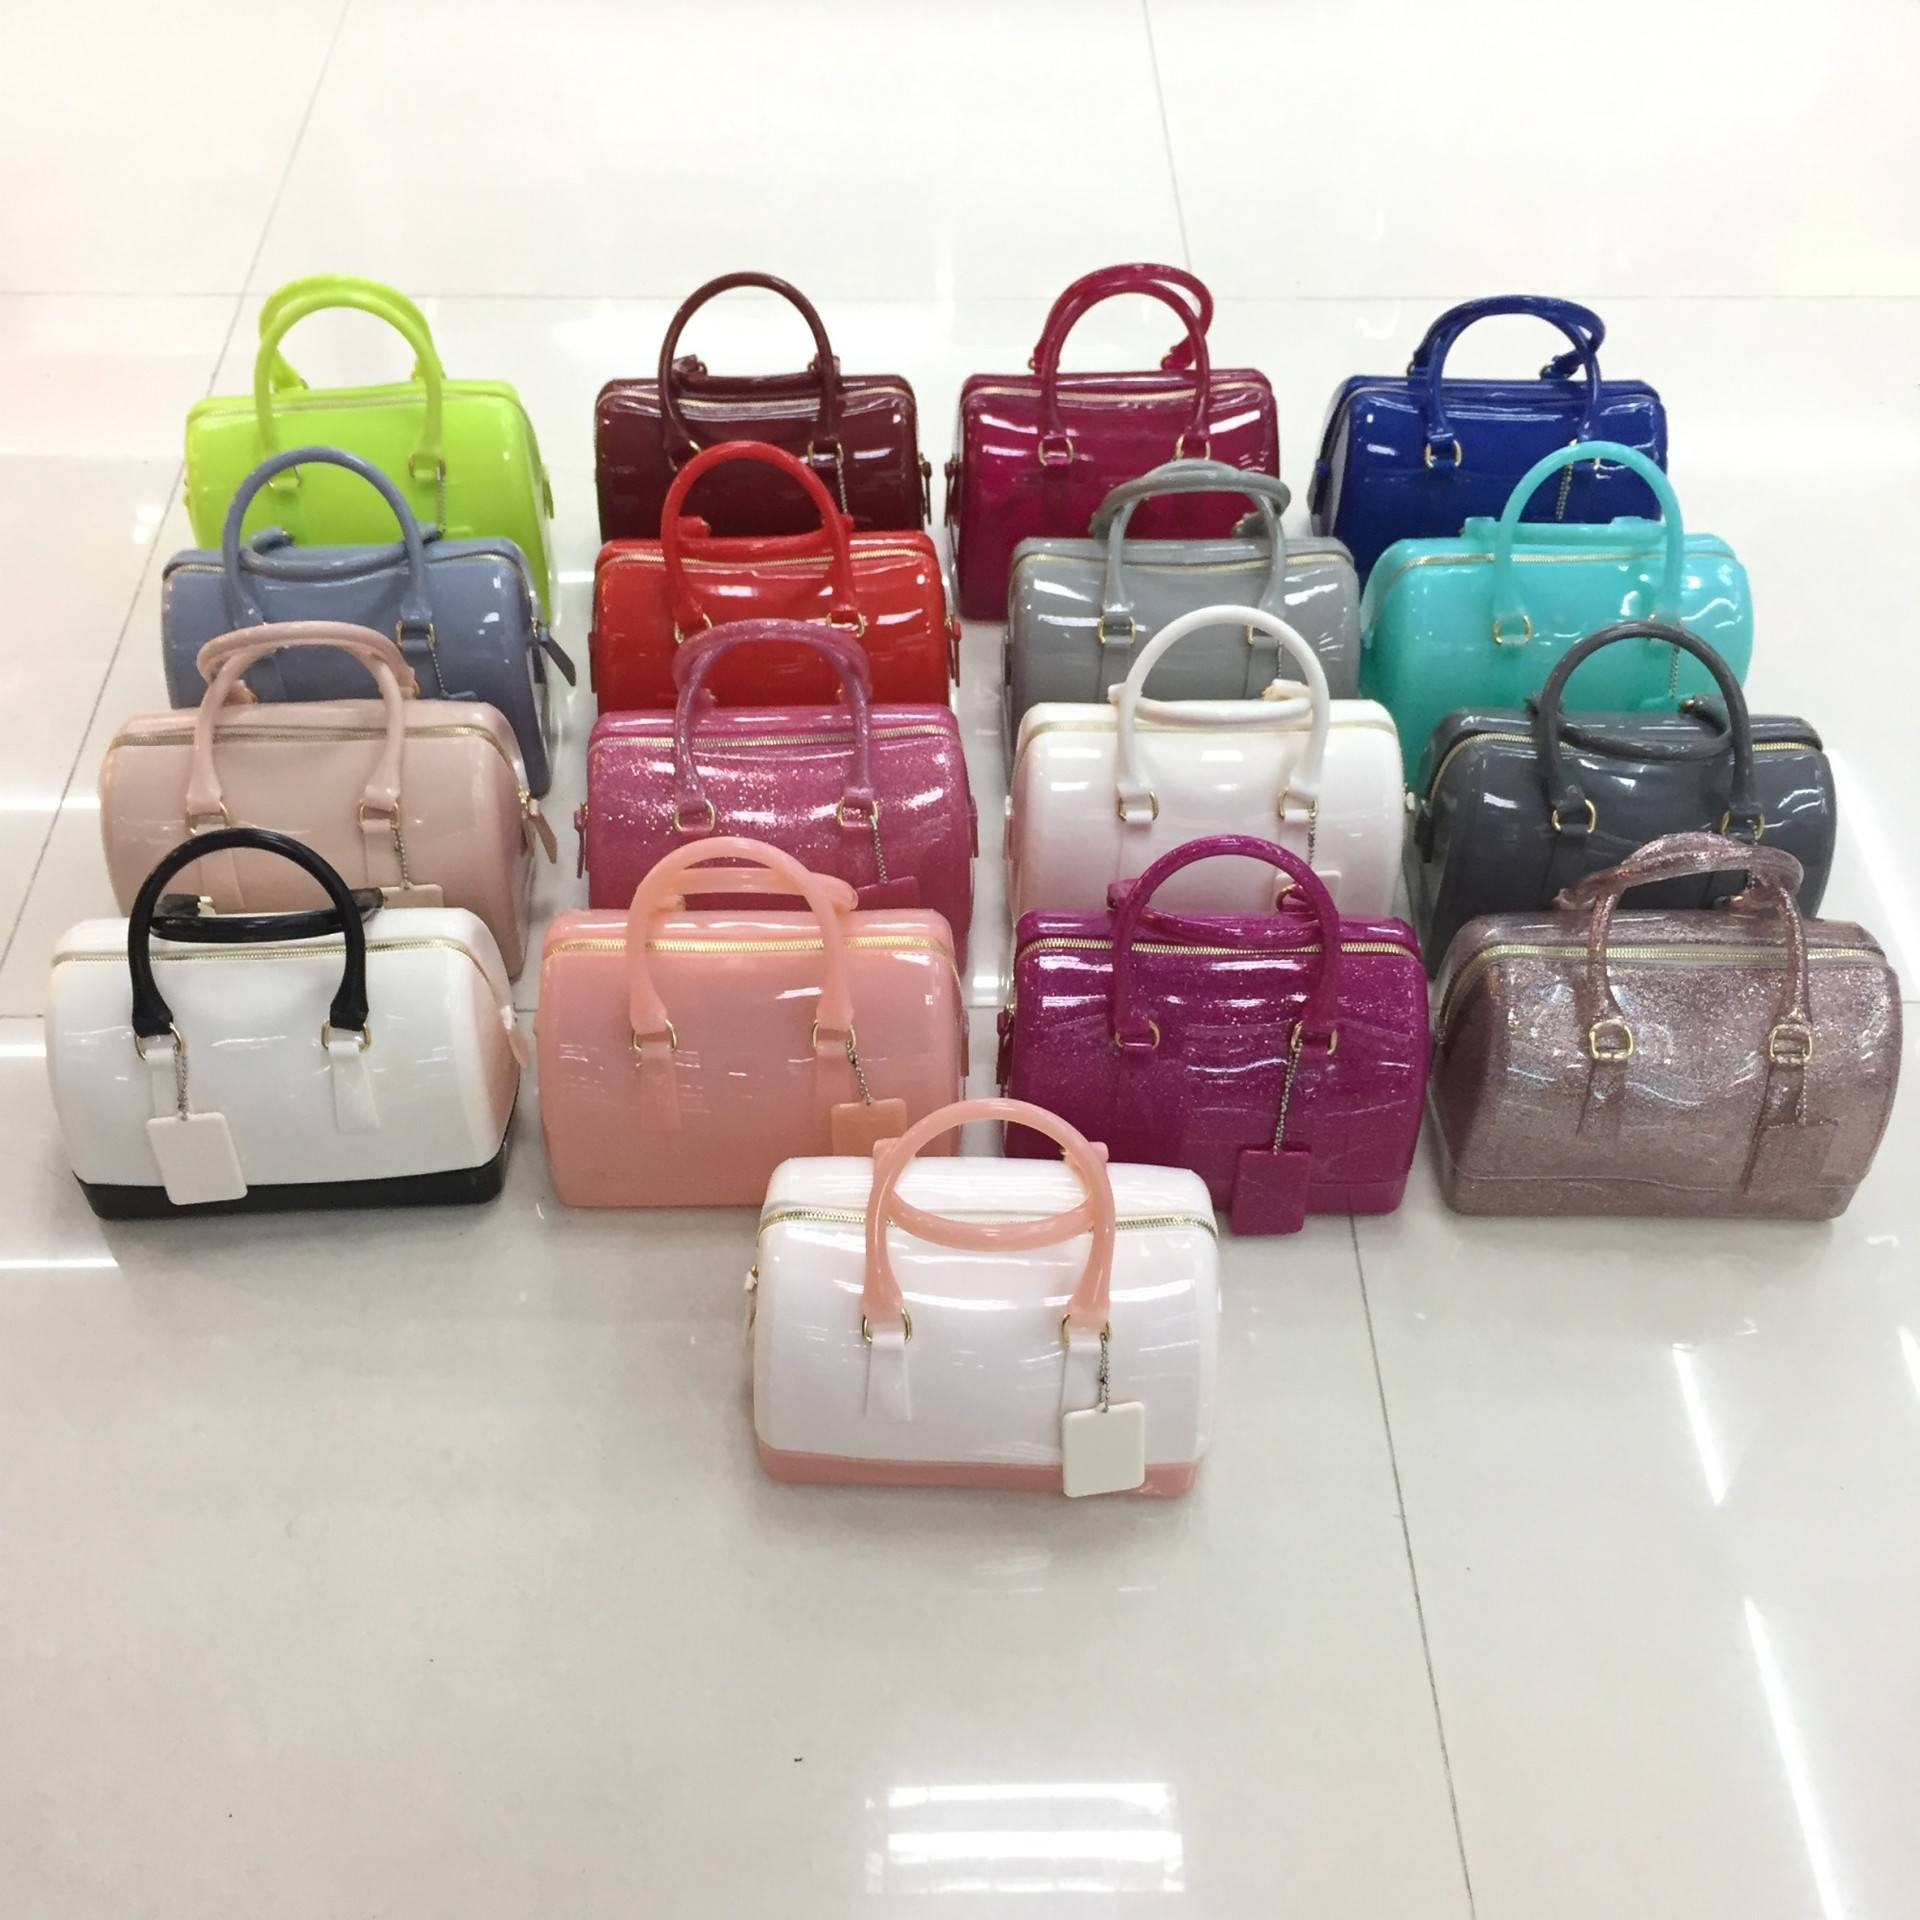 Woman summer PVC jelly bags small pillow shaped candy color sweet ladies portable beach clear tote handbag